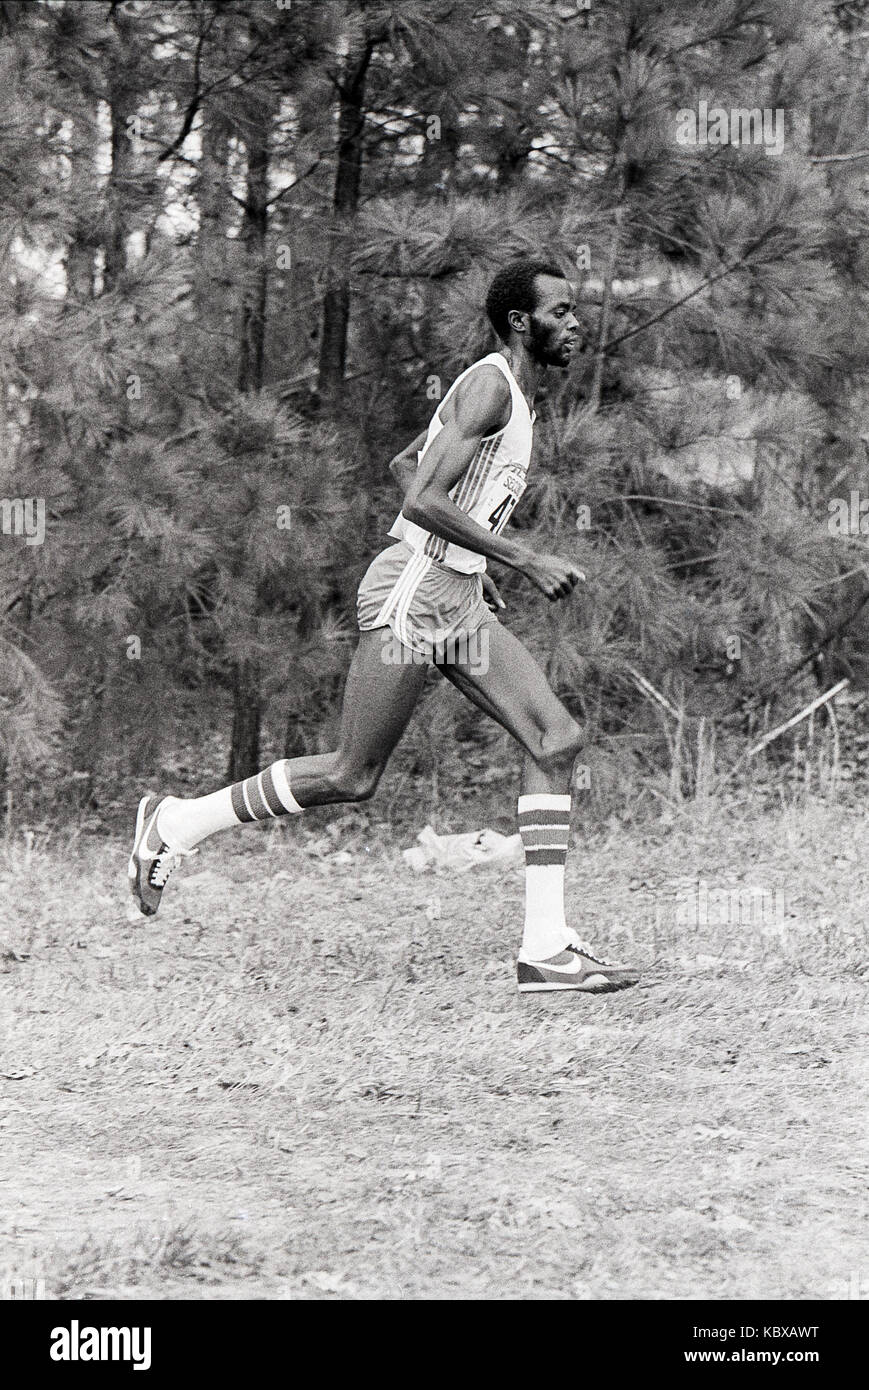 Runner competere nel 1979 aau cross country Championships. Immagini Stock